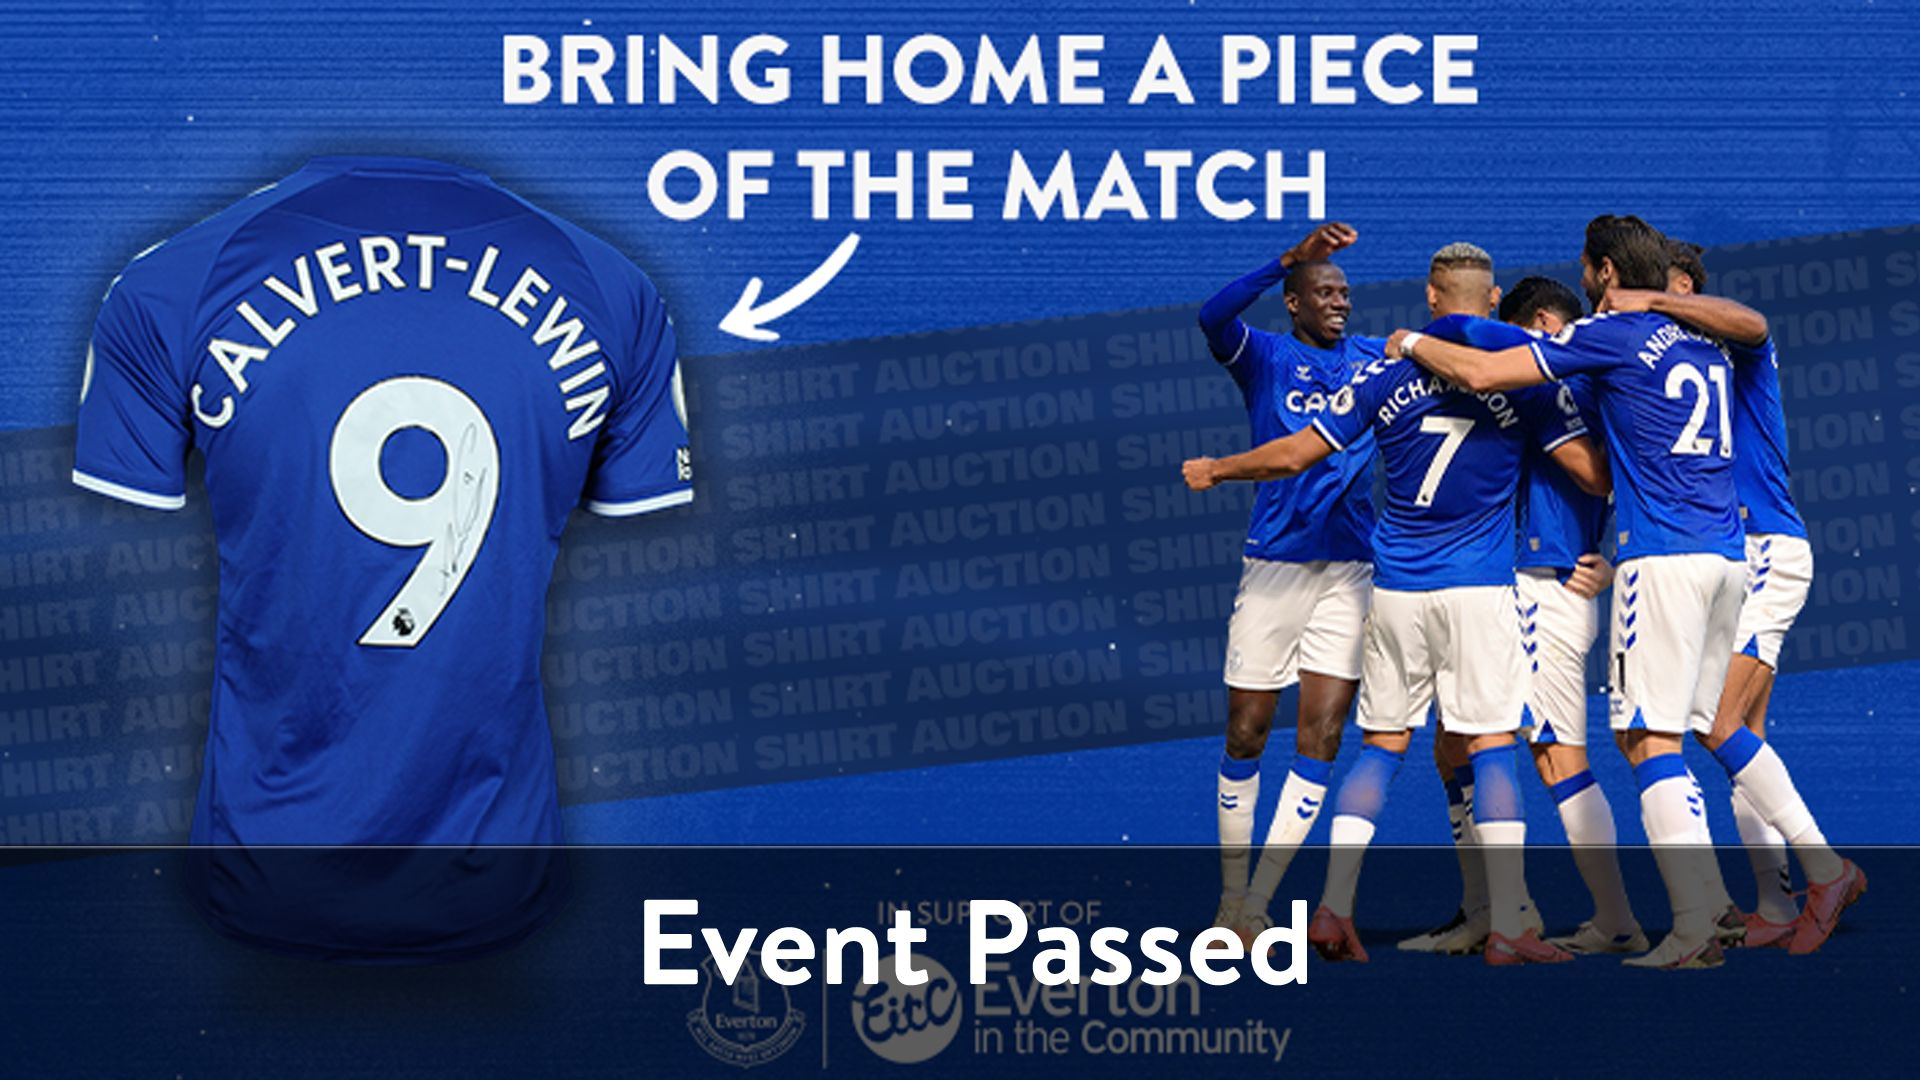 Everton's FA Cup Match-Worn Shirts Up For Grabs